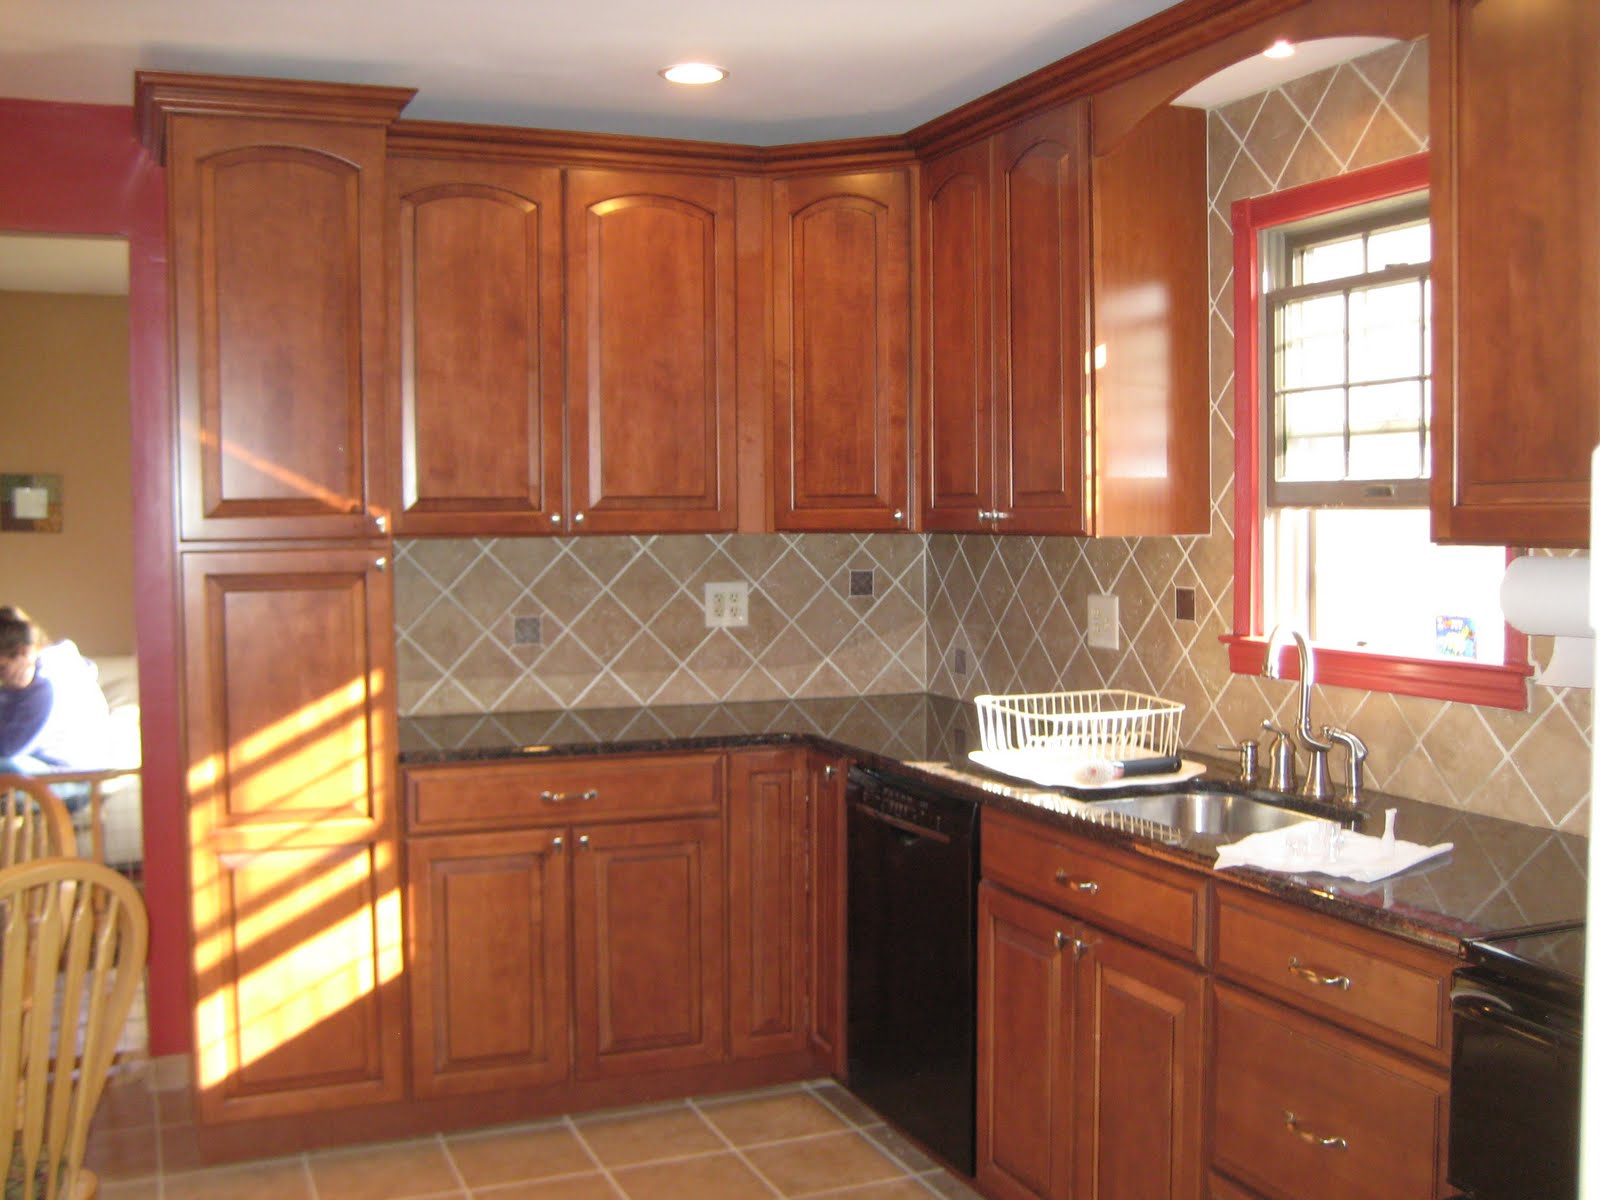 Kitchen Backsplash Ideas From Lowes